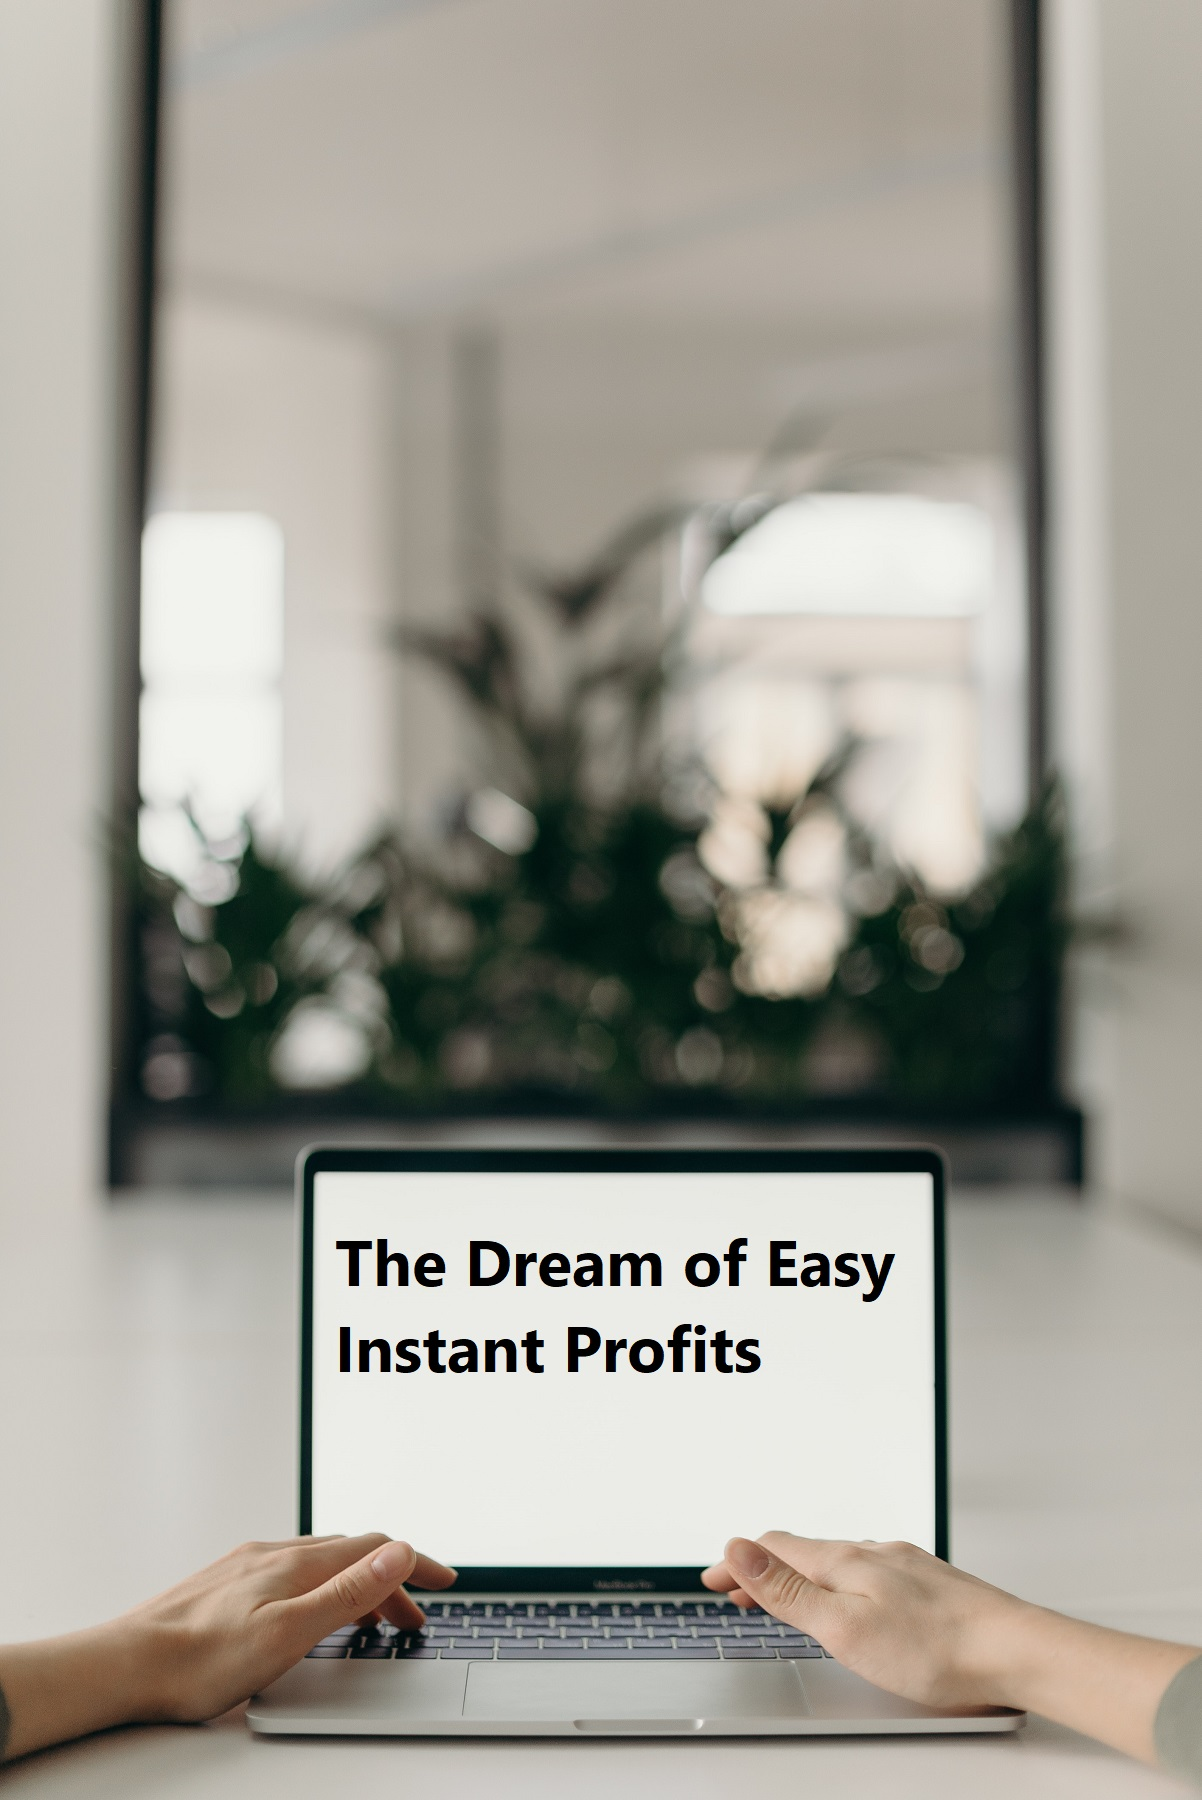 TheDream of Easy InstantProfits